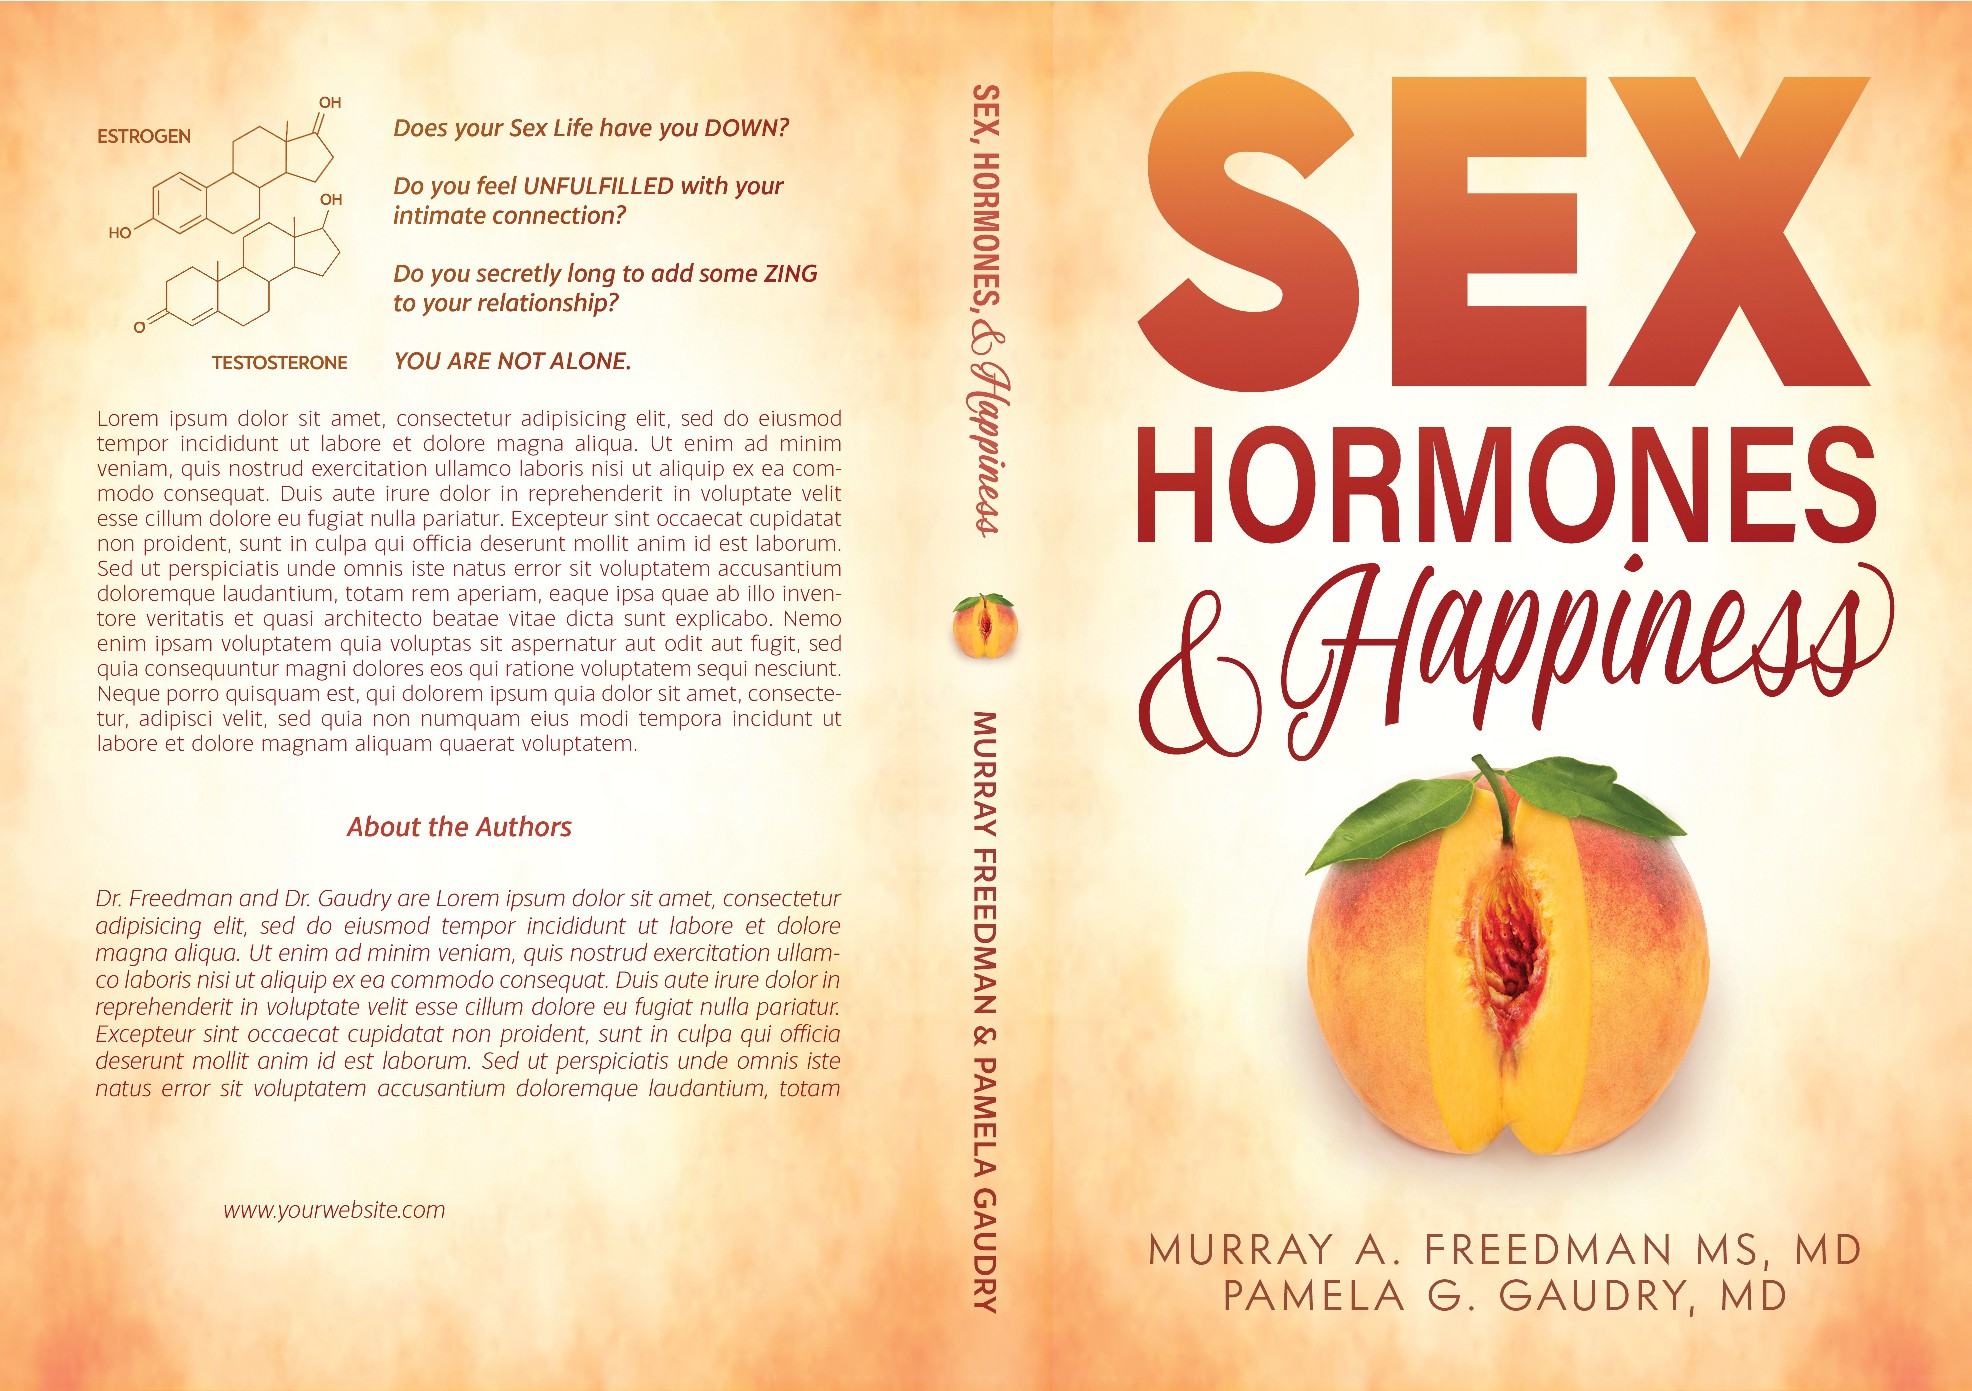 The connection between sex, hormones and happiness.